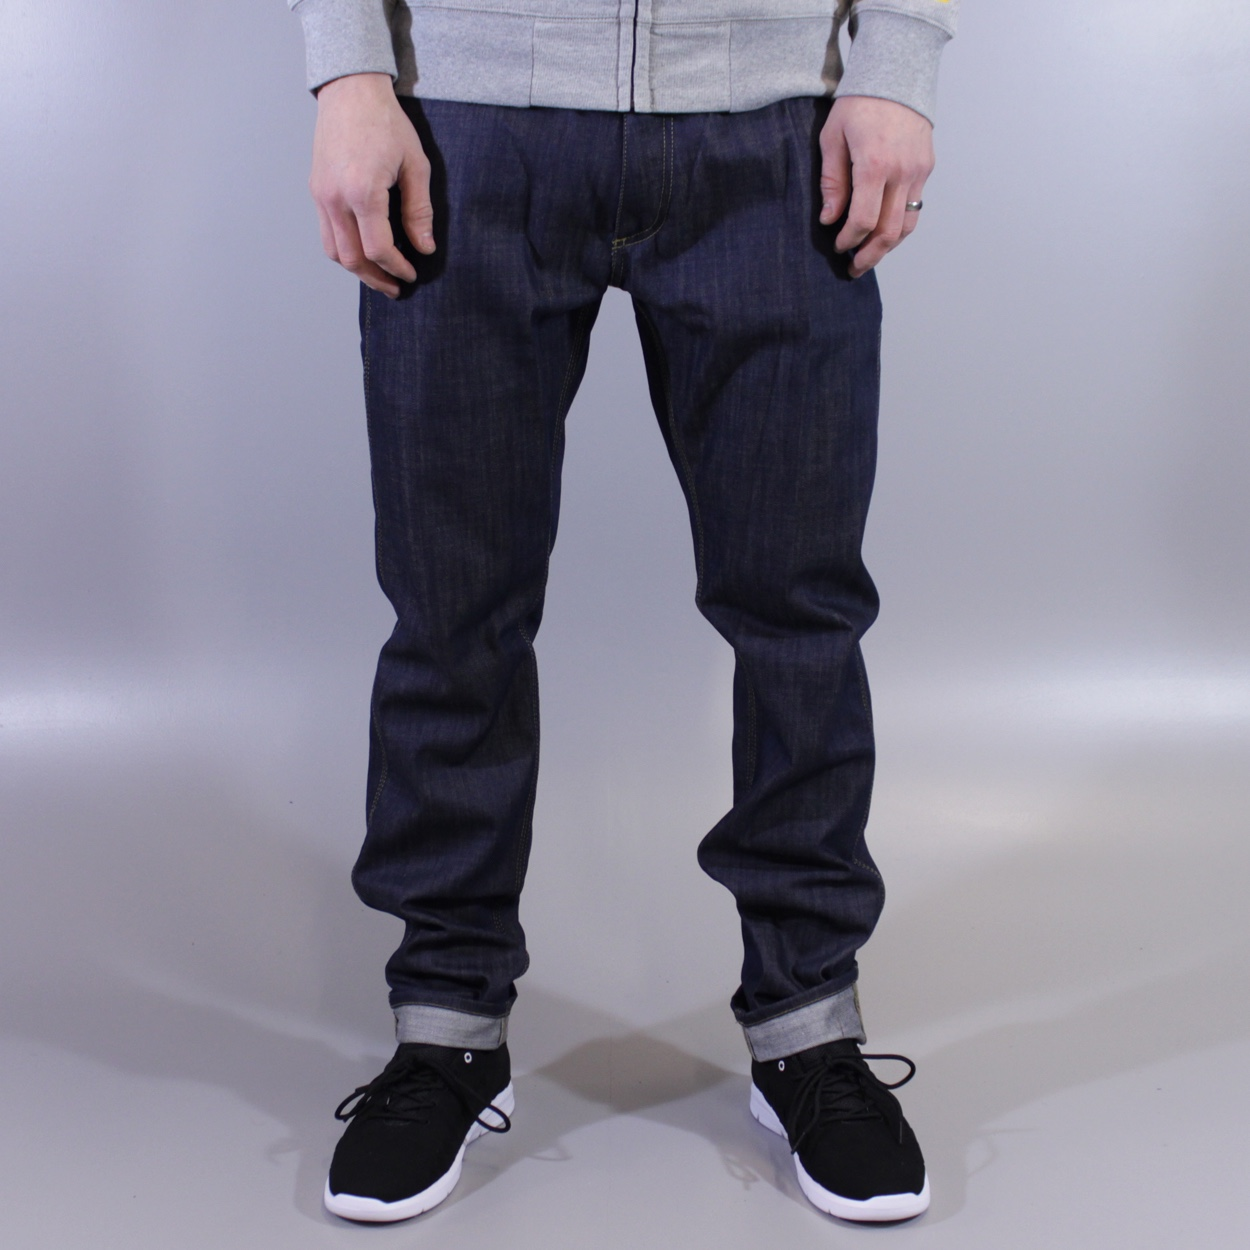 Product Image 1 - Carhartt WIP Lincoln single knee